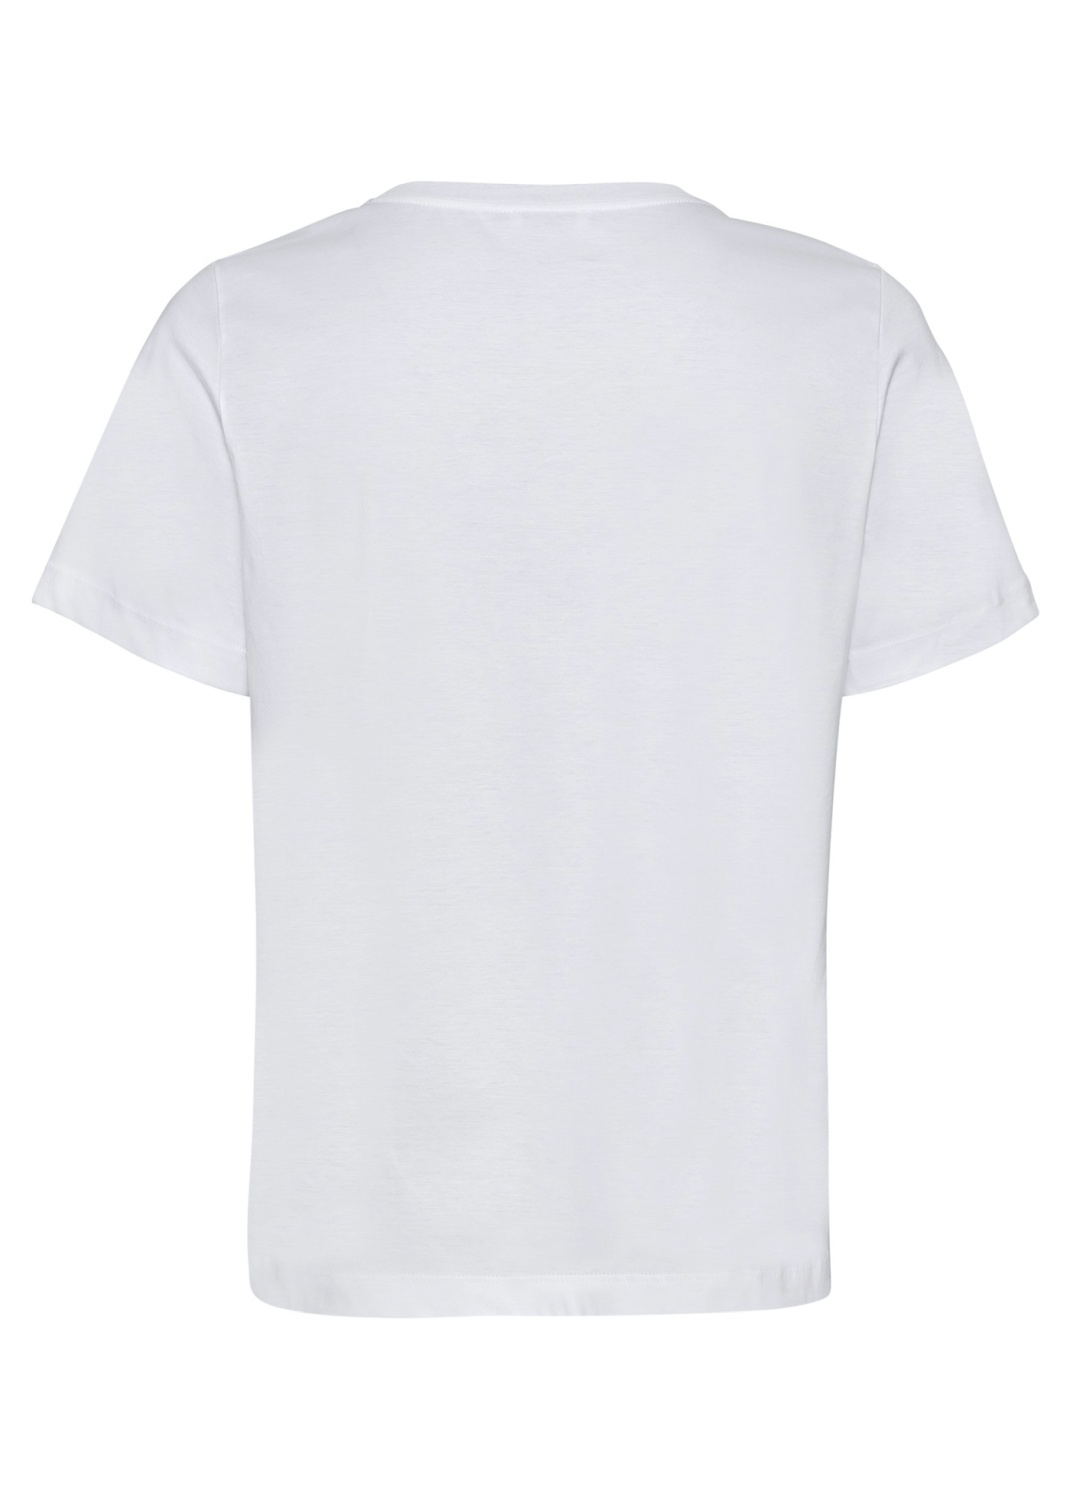 White Tee image number 1